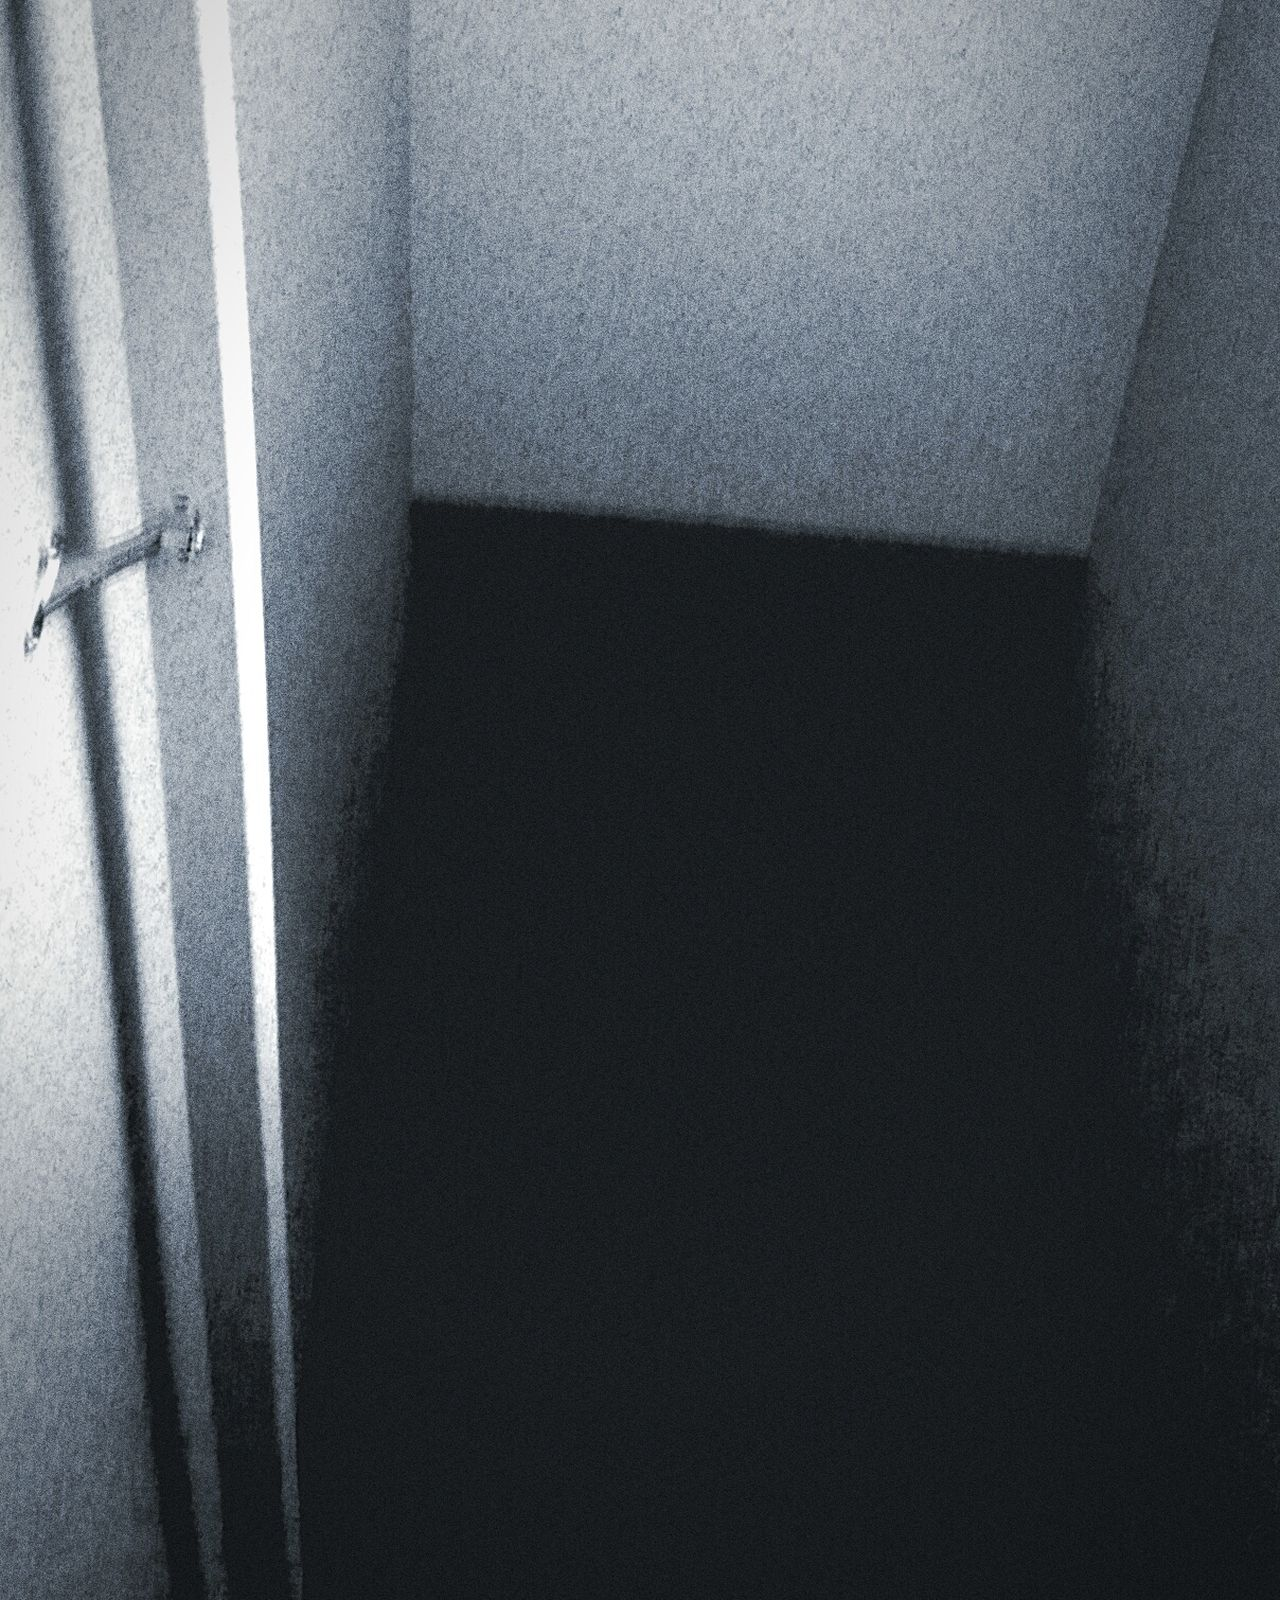 The Lurking Darkness Lighting Effects Escape From Reality Profound Vanish Black And White Another Dimension Blank Forgotten Black And White Photography Eyeemphotography Grain Simple Minimal